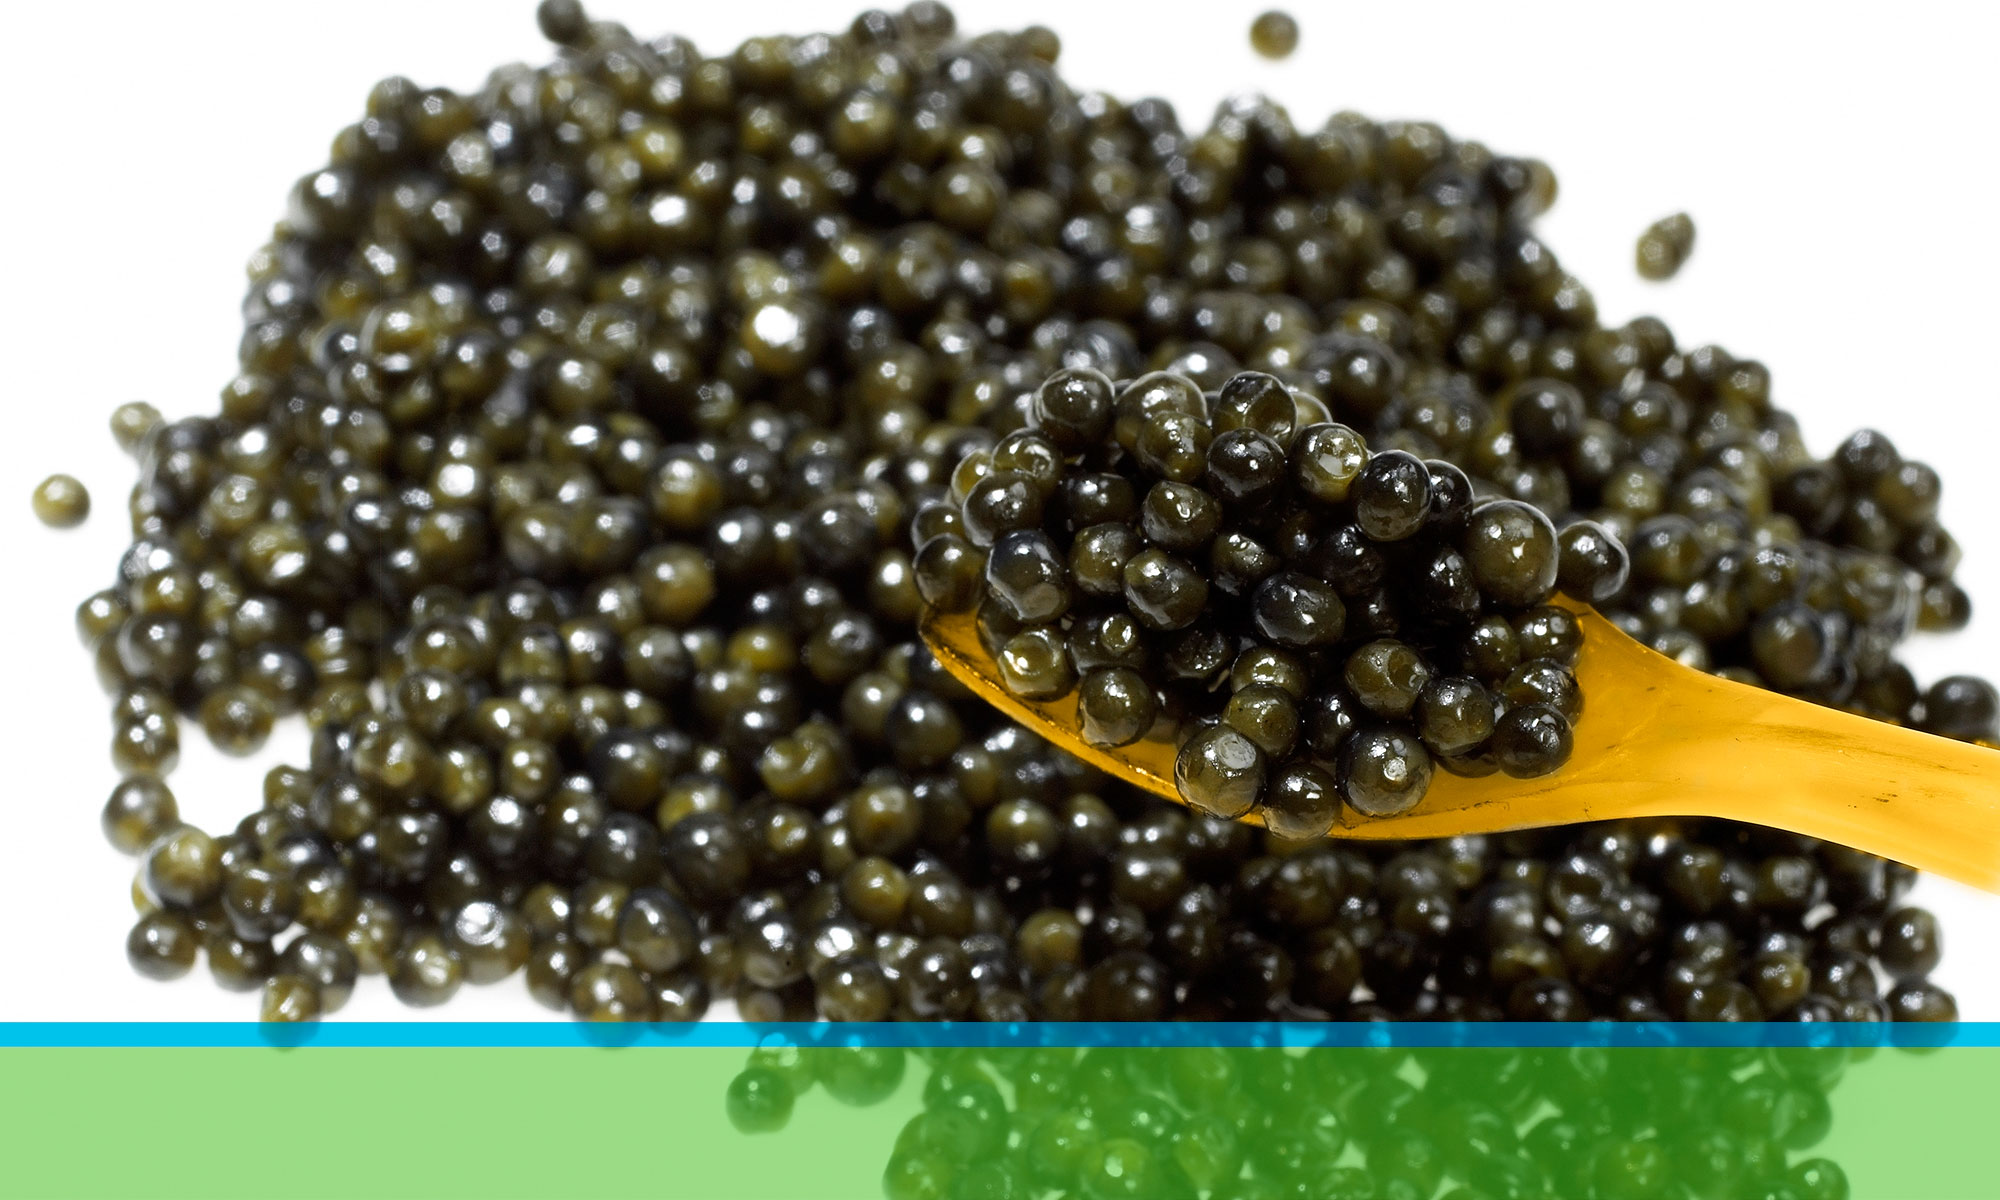 Végétal Alternative au Caviar vegancaviarluxury.com